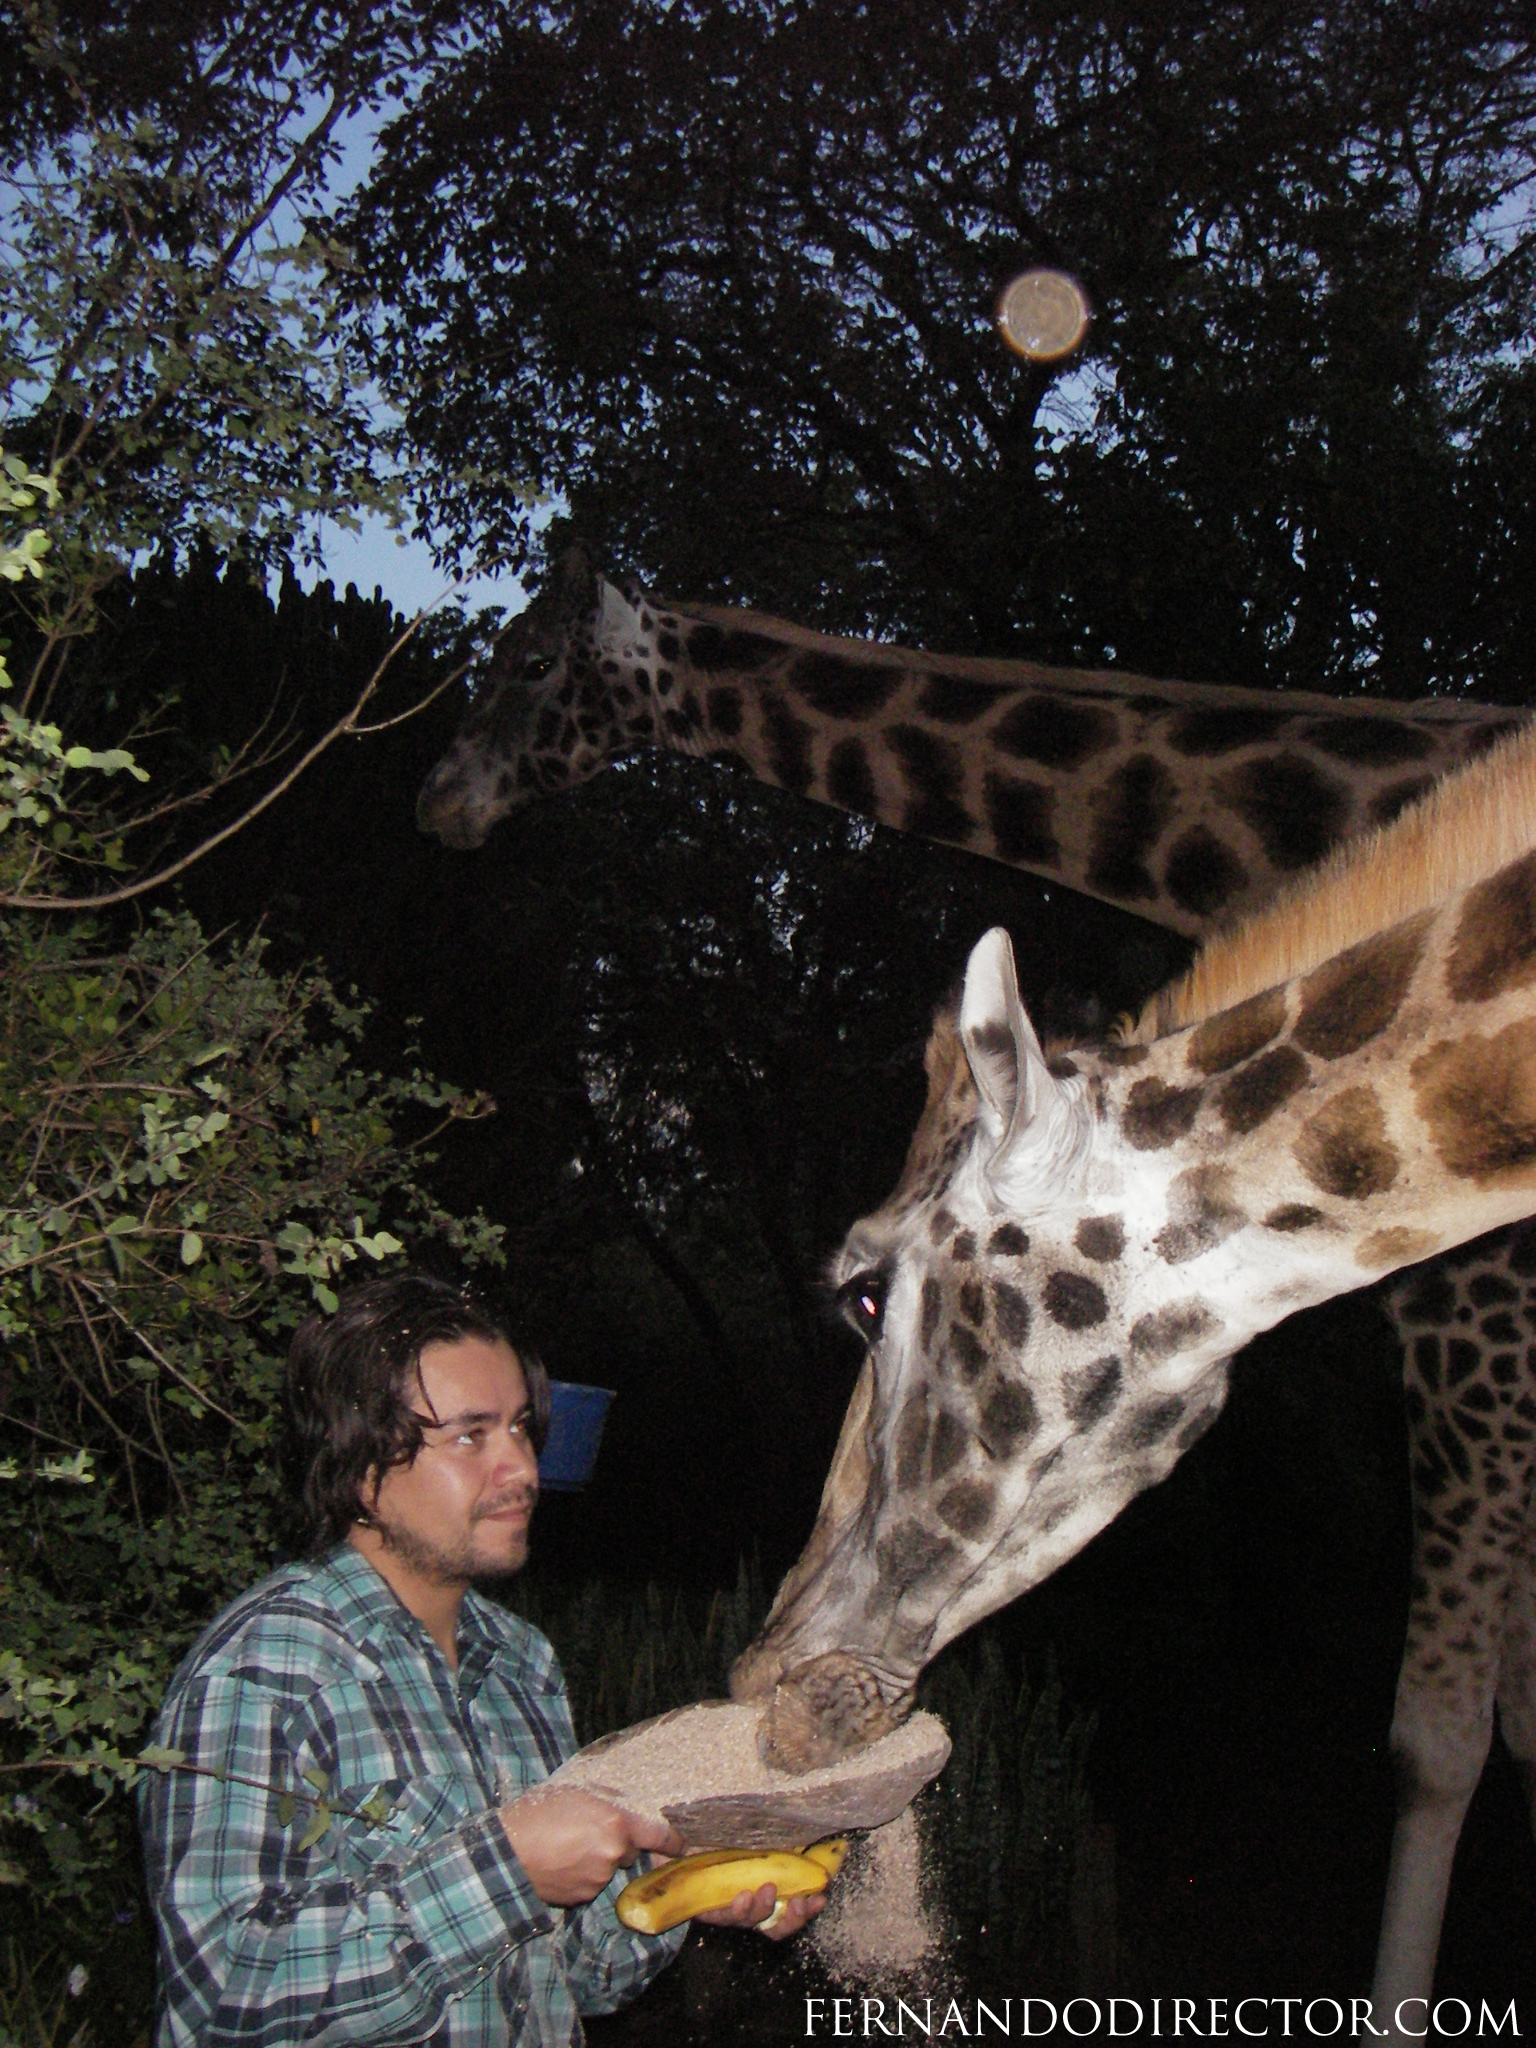 Fernando with Giraffe at Hog Ranch in Kenya